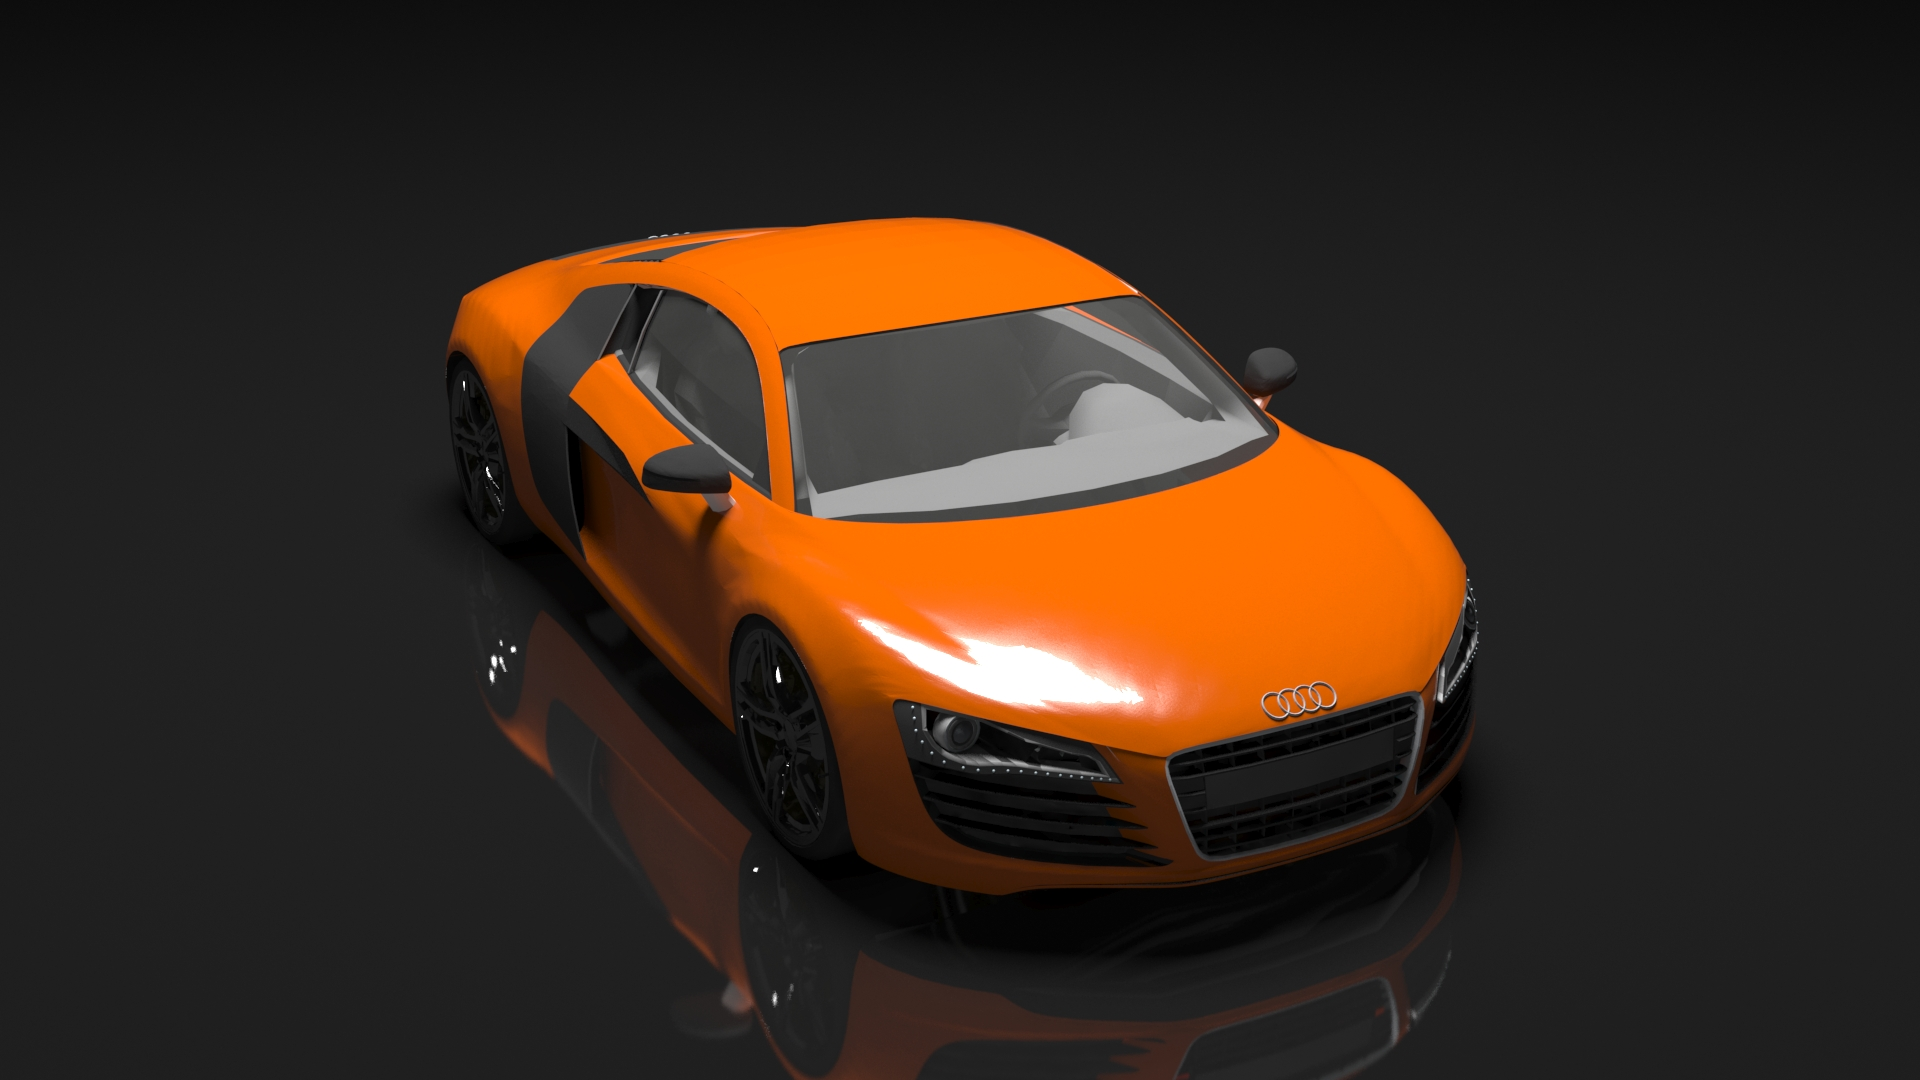 audi r8 model 3d model buy audi r8 model 3d model. Black Bedroom Furniture Sets. Home Design Ideas